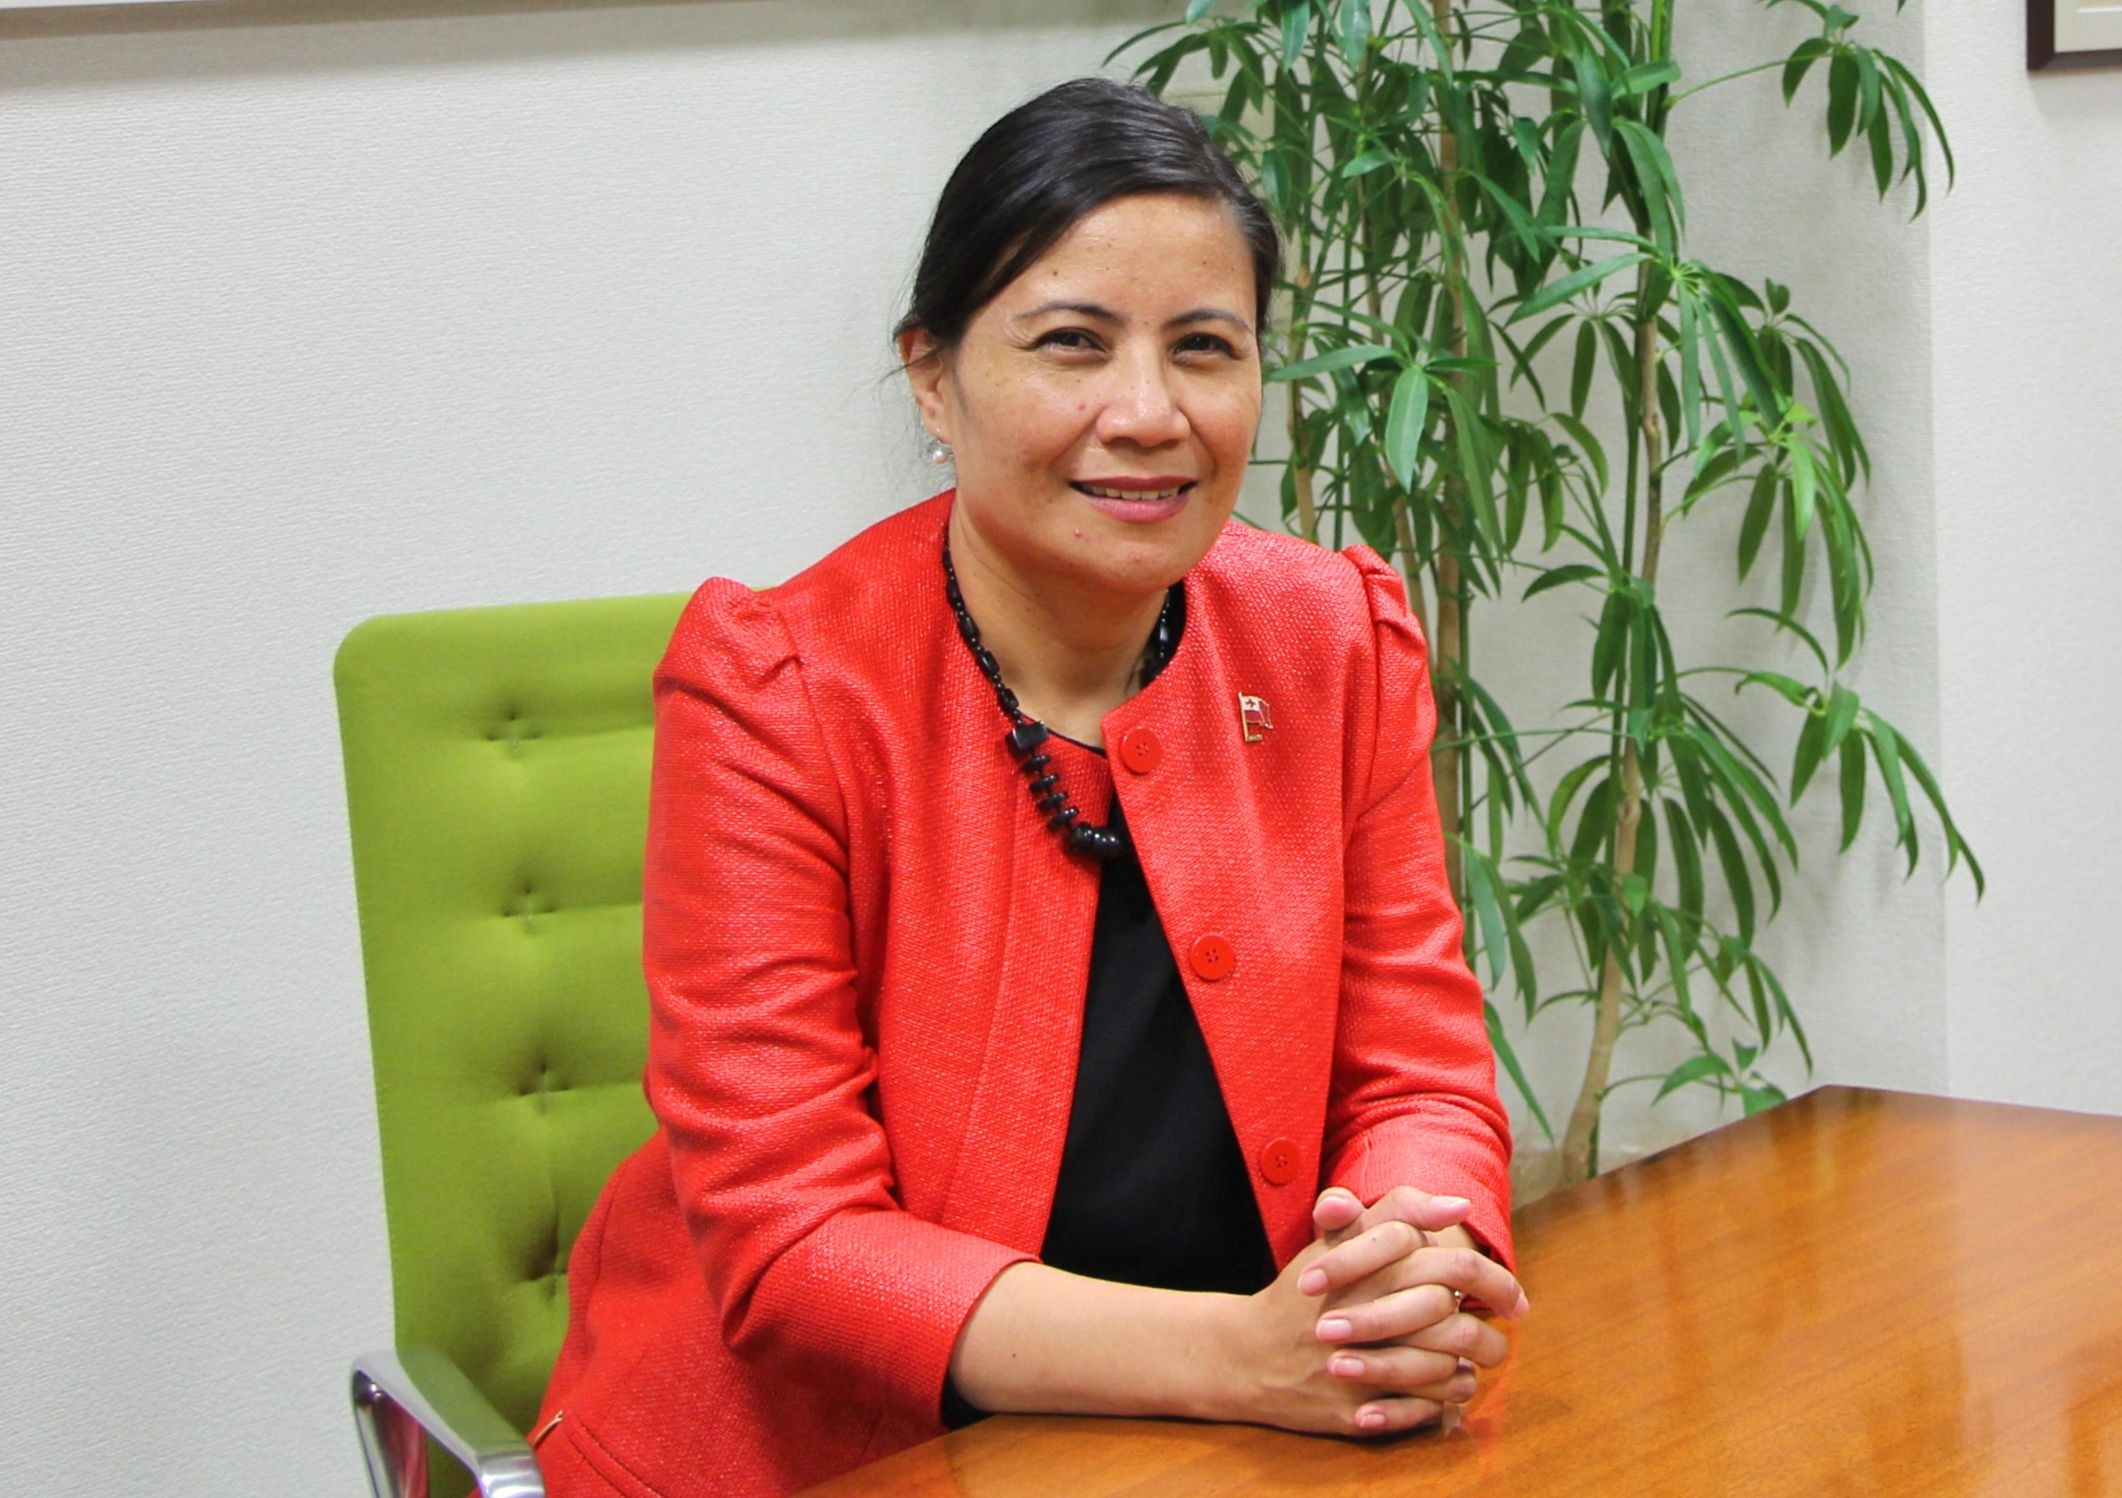 Interview: Tonga Ambassador to Japan, Her Excellency Lady Tania Laumanulupe'o Talafolika FUSITU'A